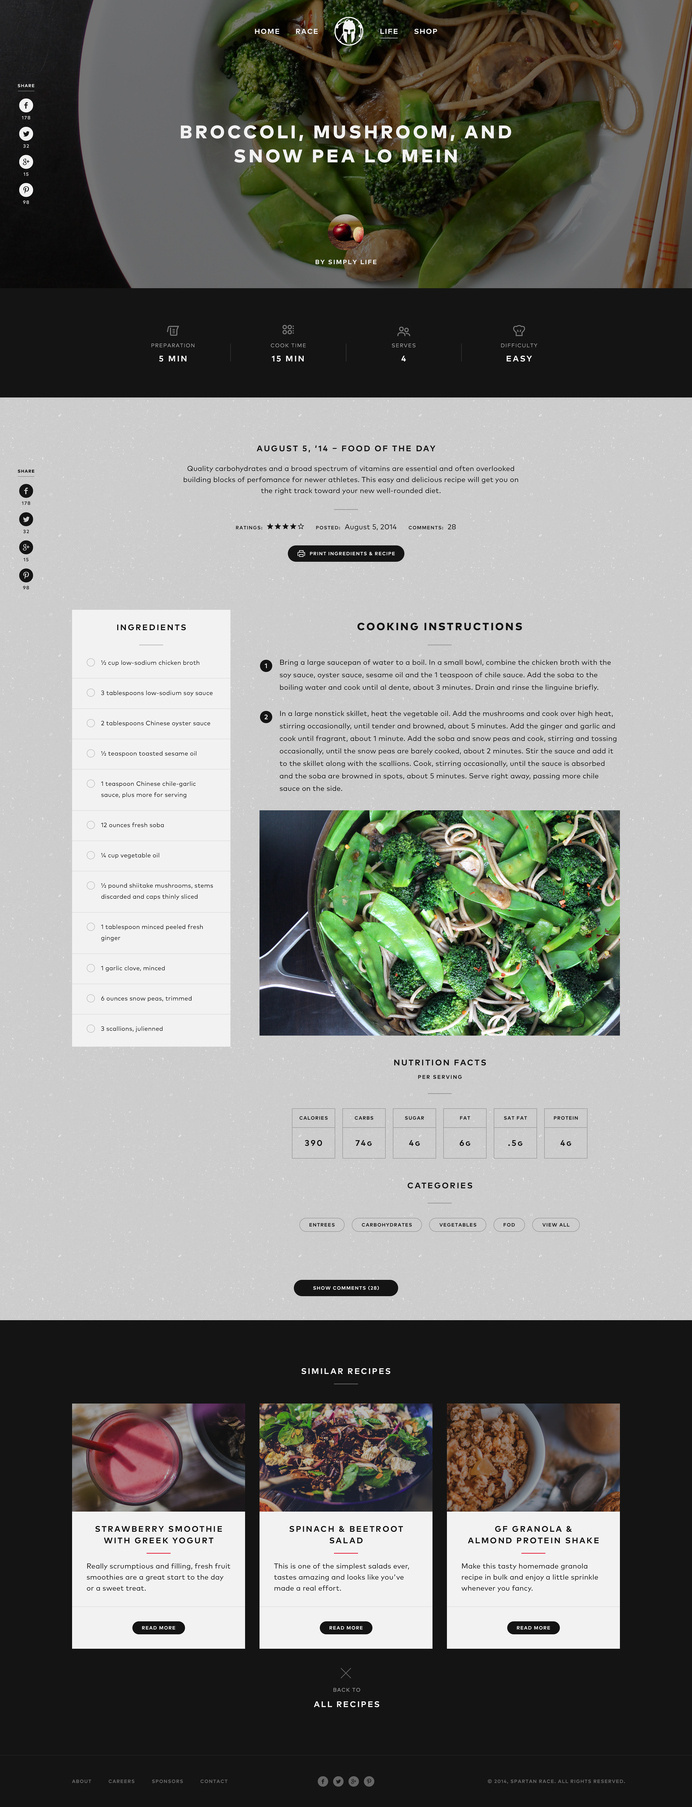 Article-nutrition #layout #cook #web #meal